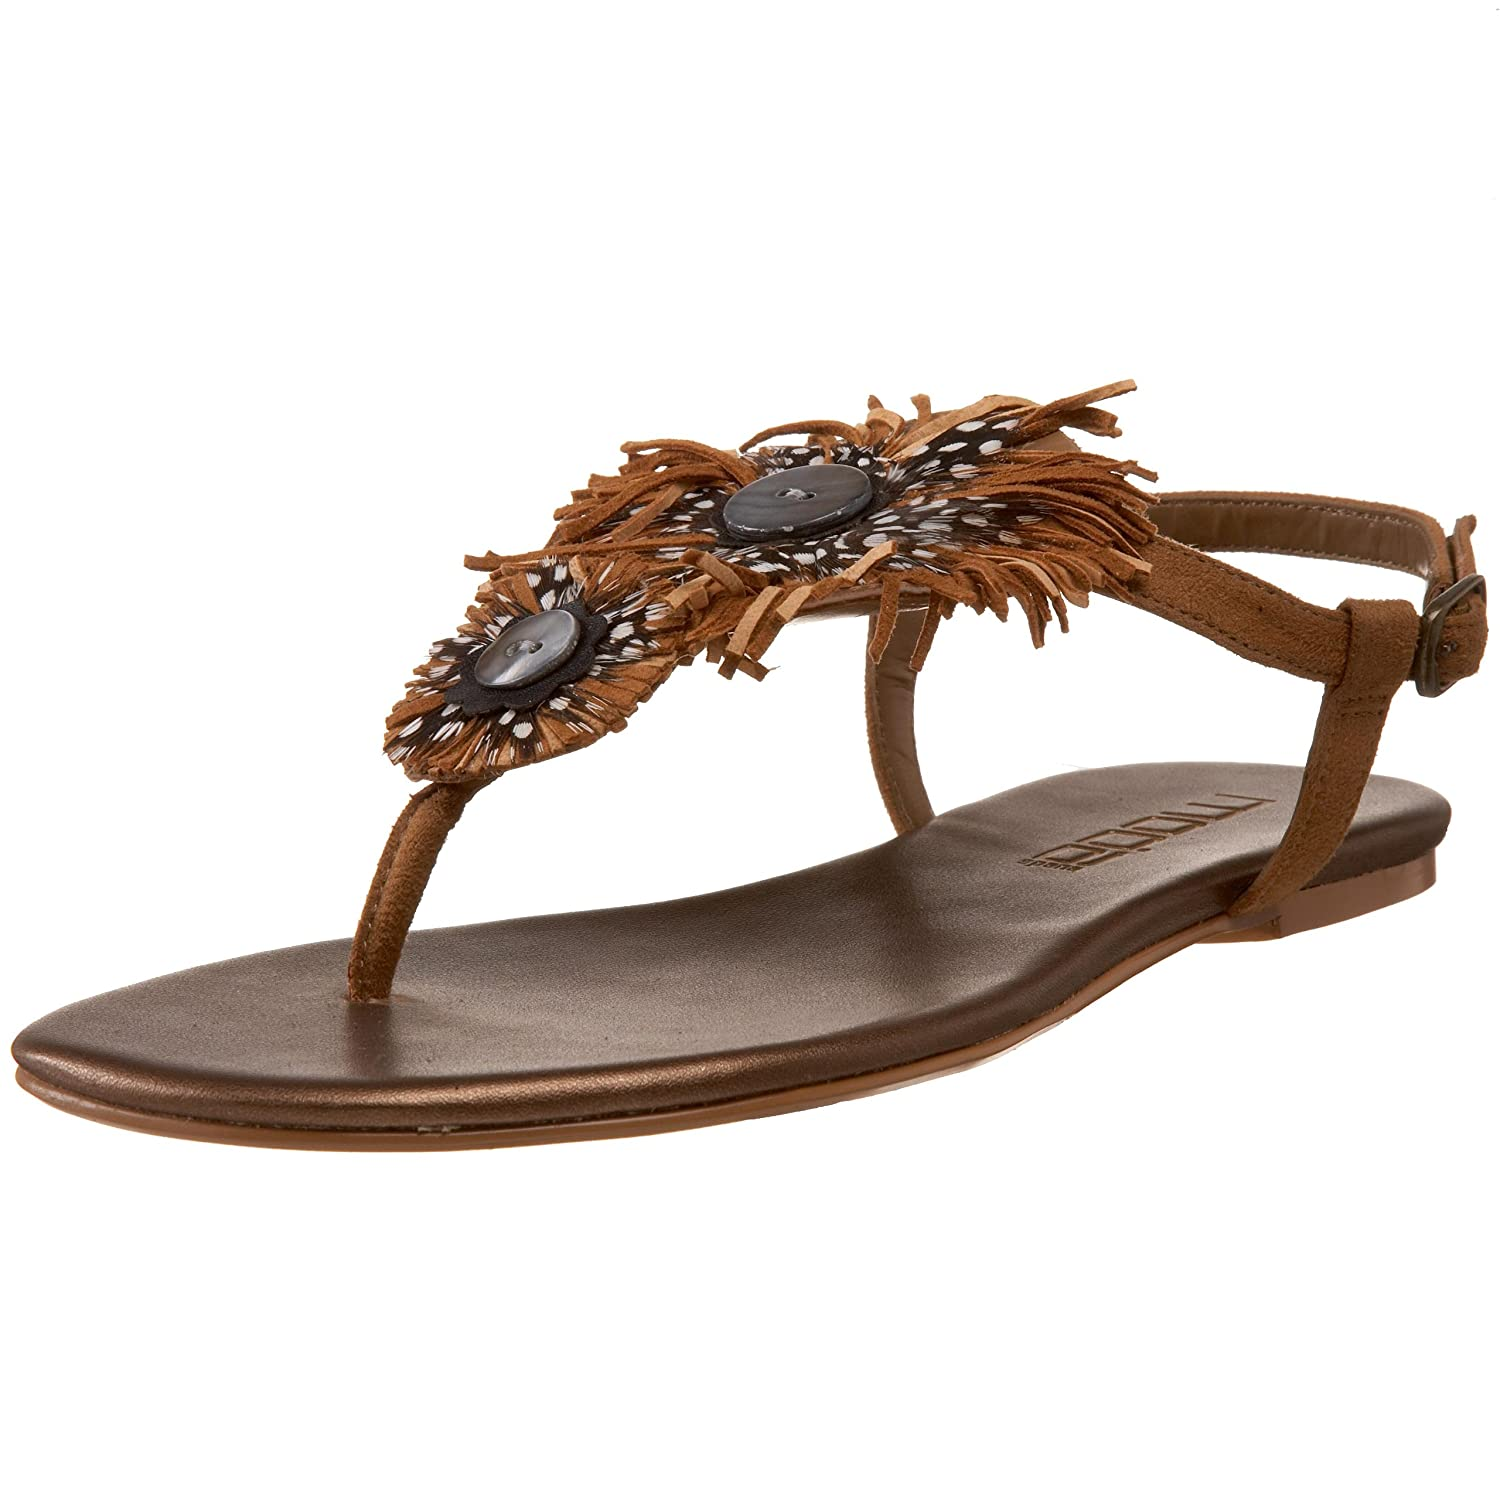 Moda Spana - Women's Jerash Sandal  :  feather sandal moda spana jerash sandal feather thong sandal